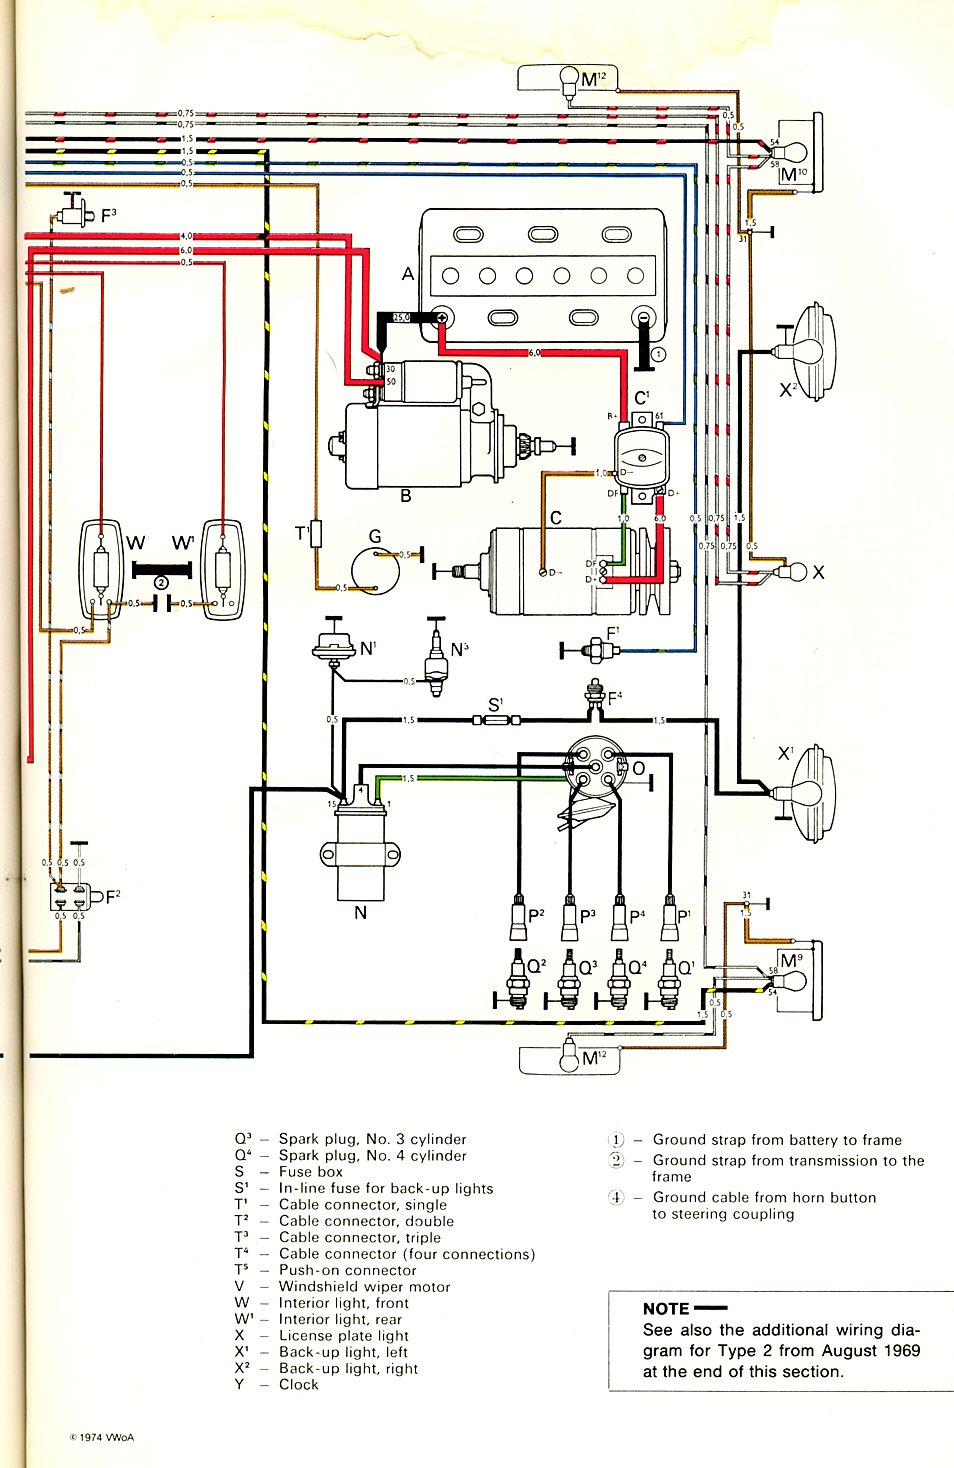 baybus_70b thesamba com type 2 wiring diagrams 1974 Super Beetle Wiring Diagram at reclaimingppi.co